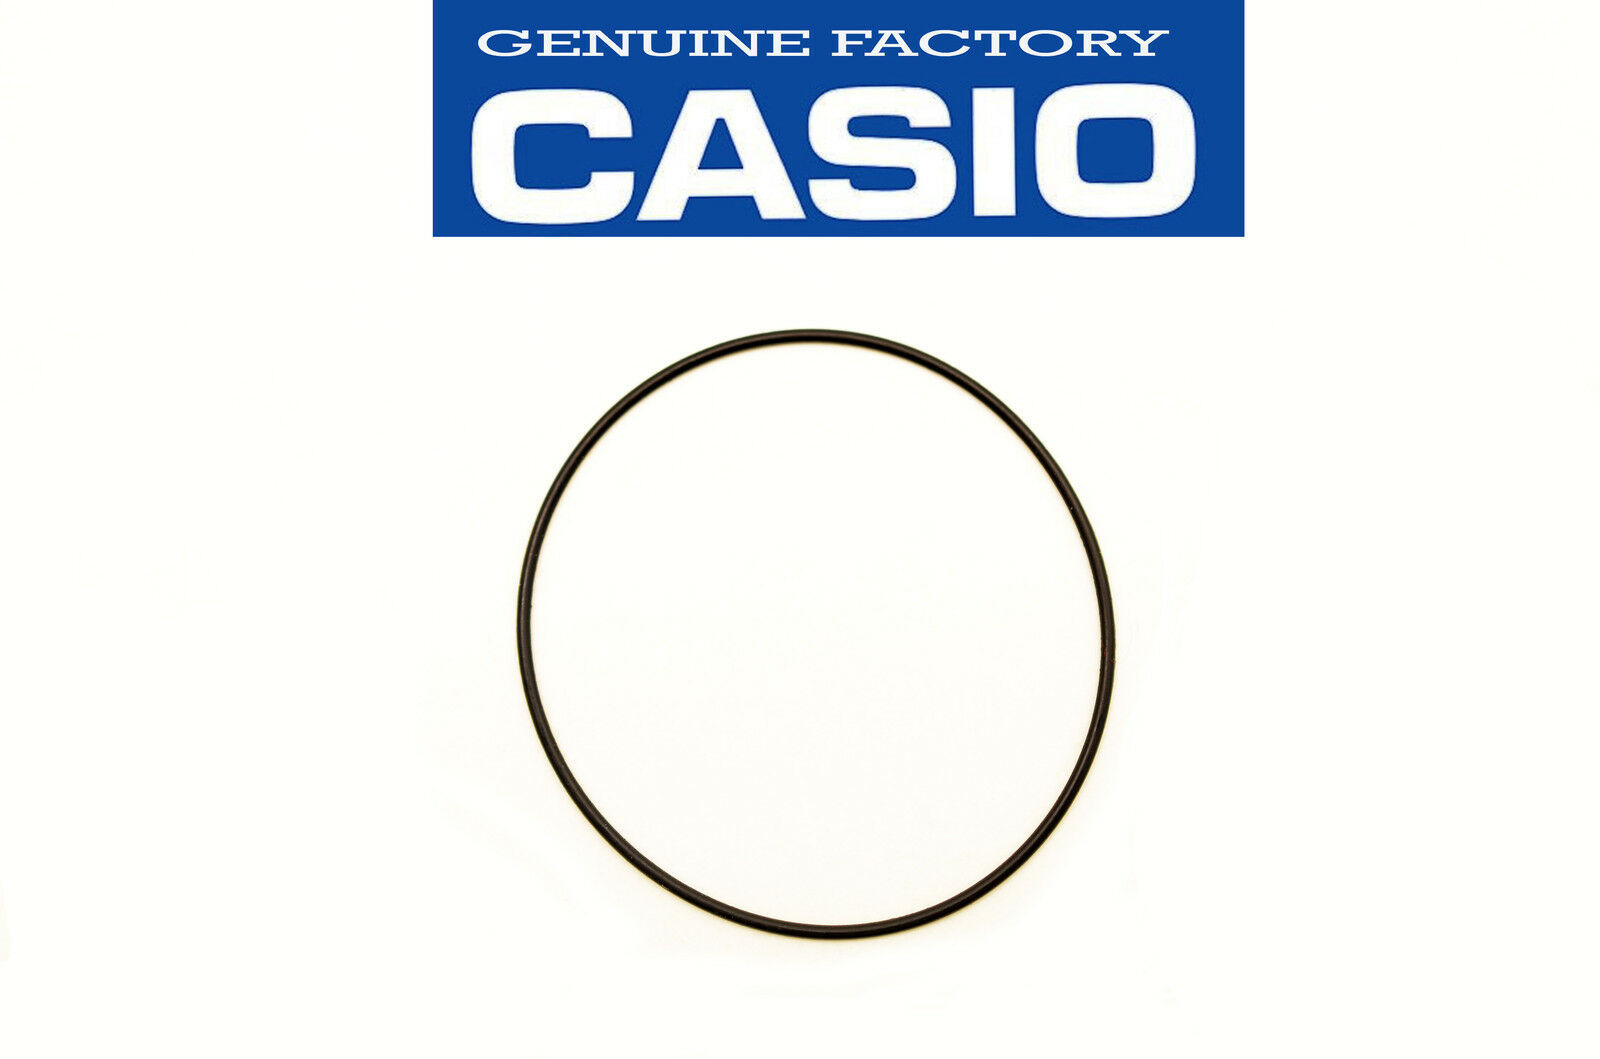 Primary image for Casio G-SHOCK GASKET O-RING DW-5600 DW-5600E DW-9100B G-100 G-101 GWX-5600